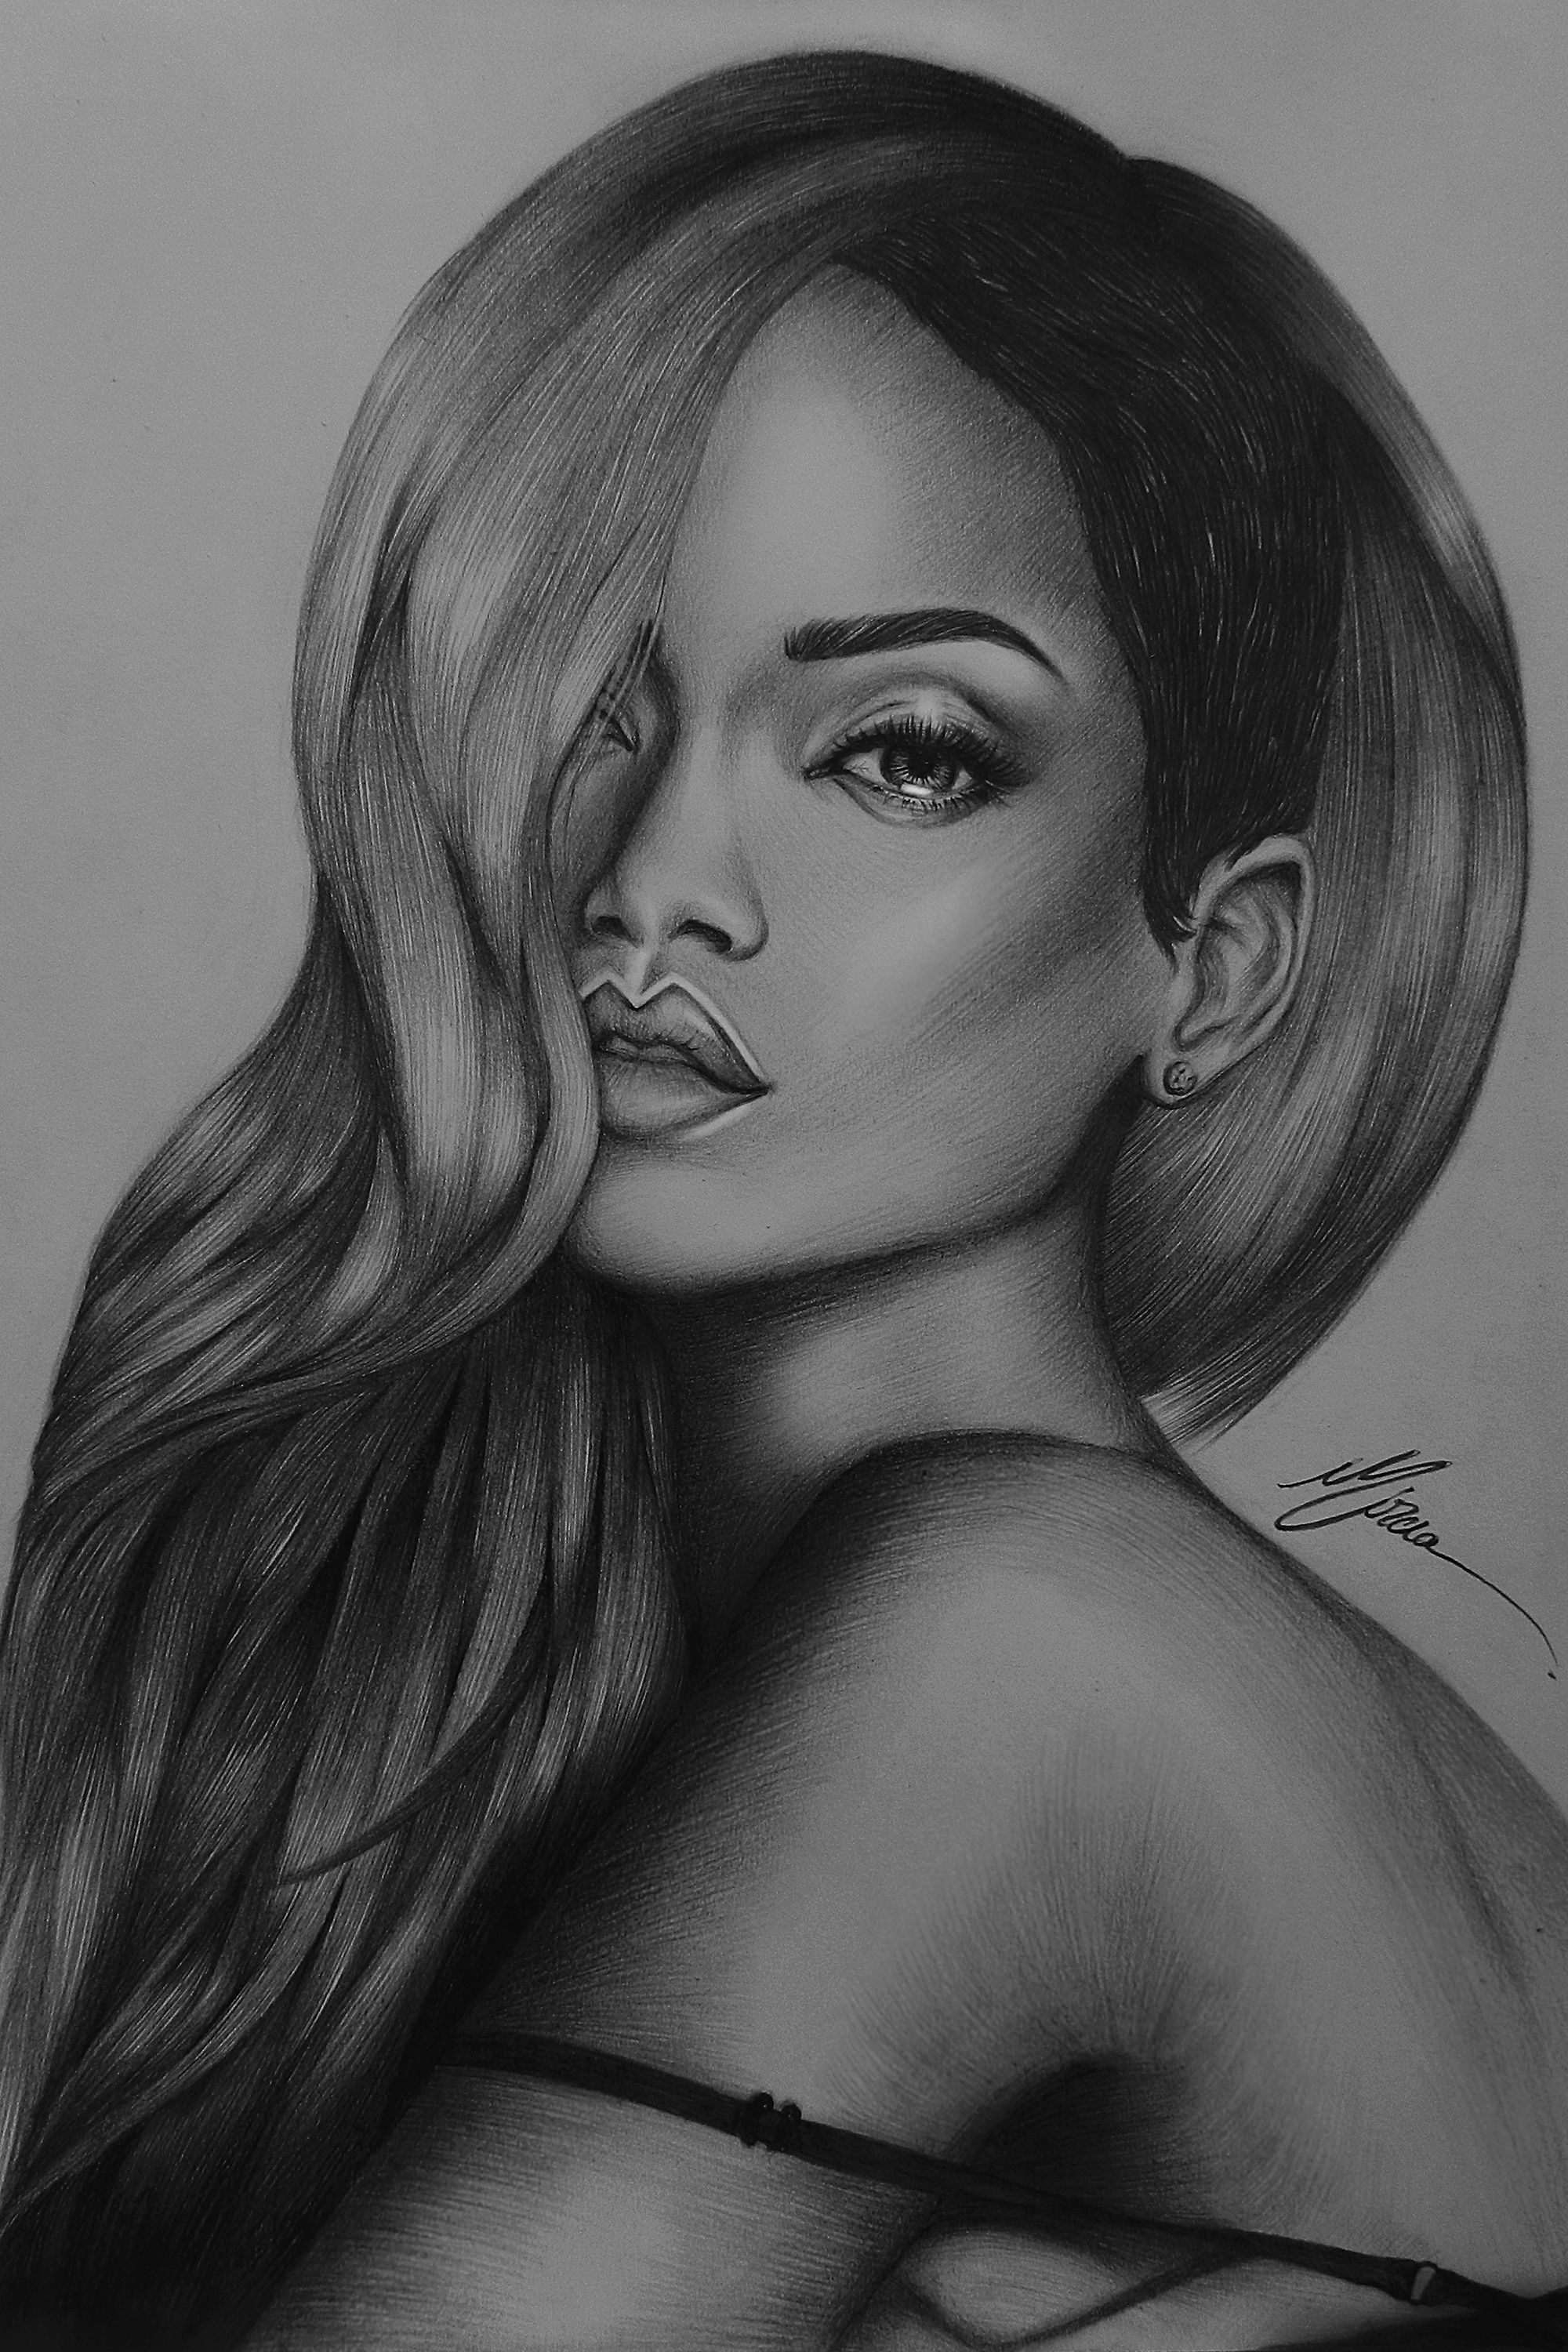 new drawing of Rihanna . D Celebrity drawings